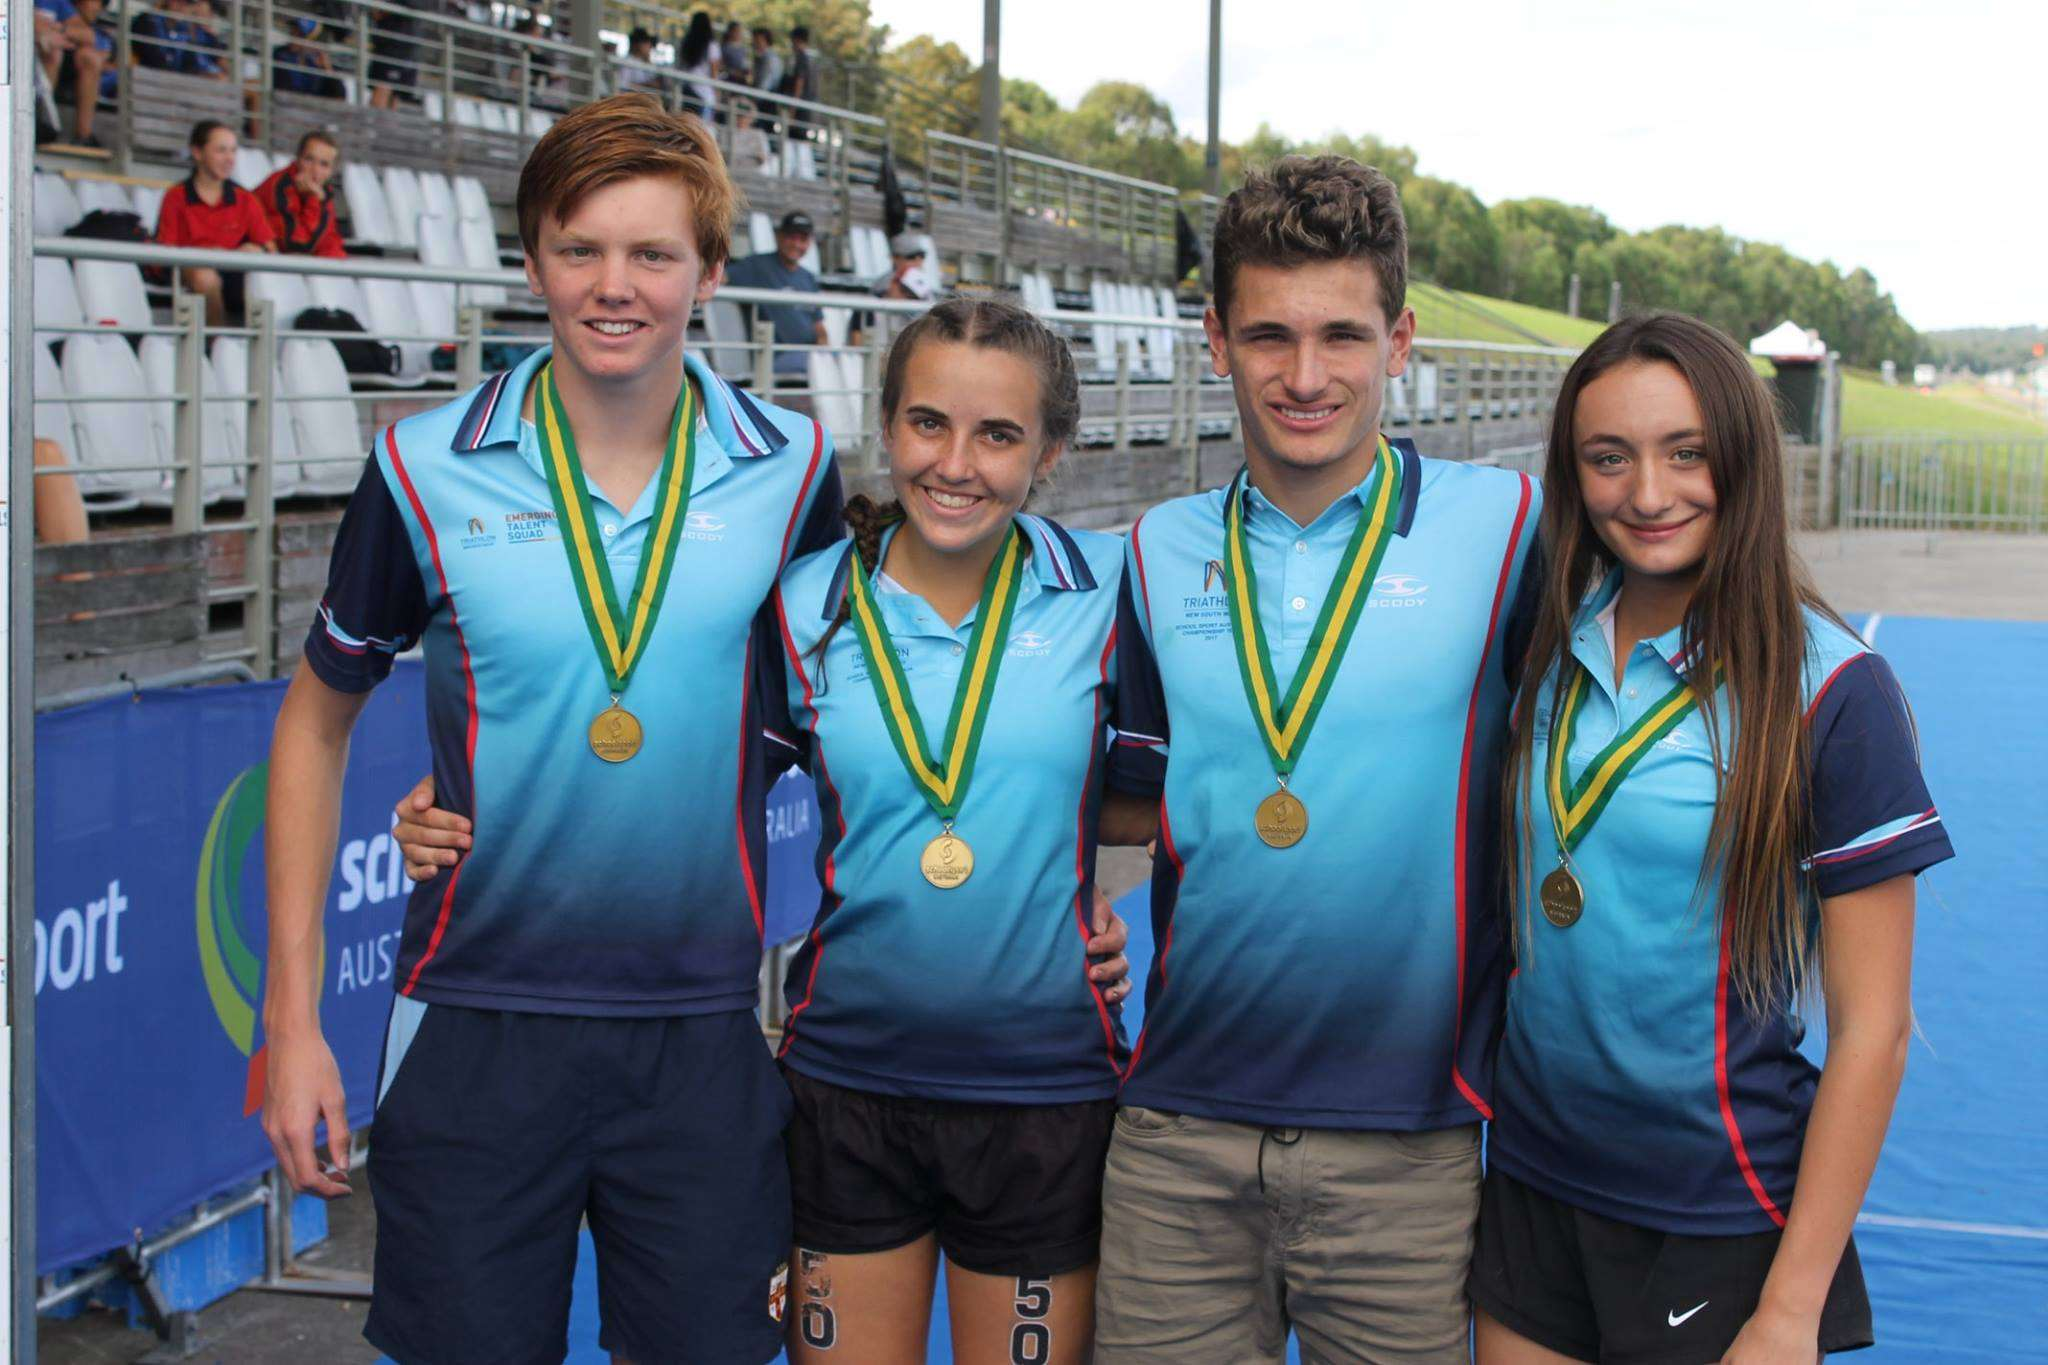 NSW Senior Relay Team - ASTF 2017